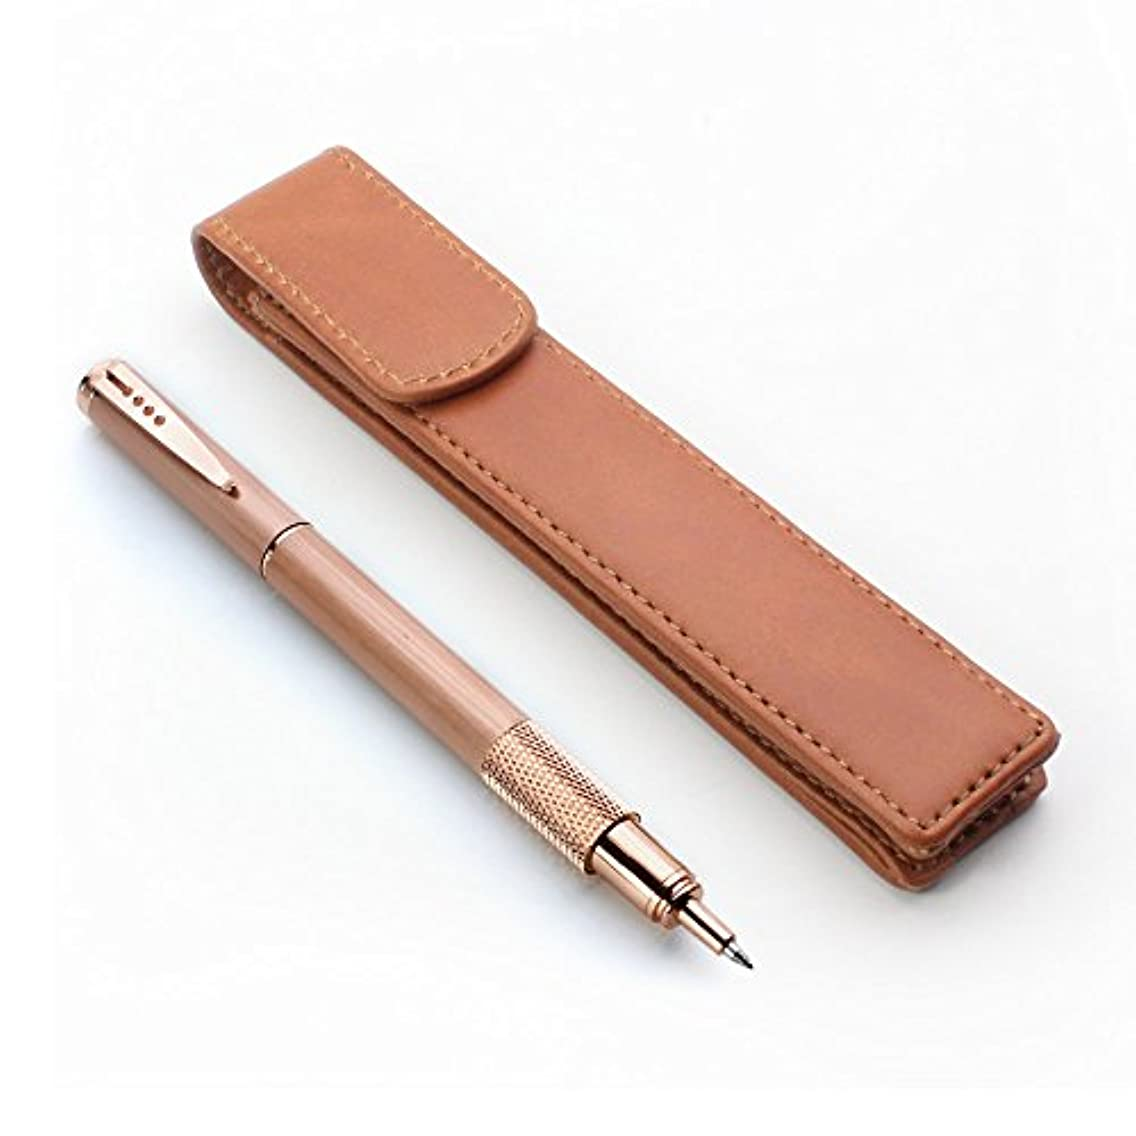 Leather Pen Case Pouch Holder - Protective Single Sleeve for Pens, Brown